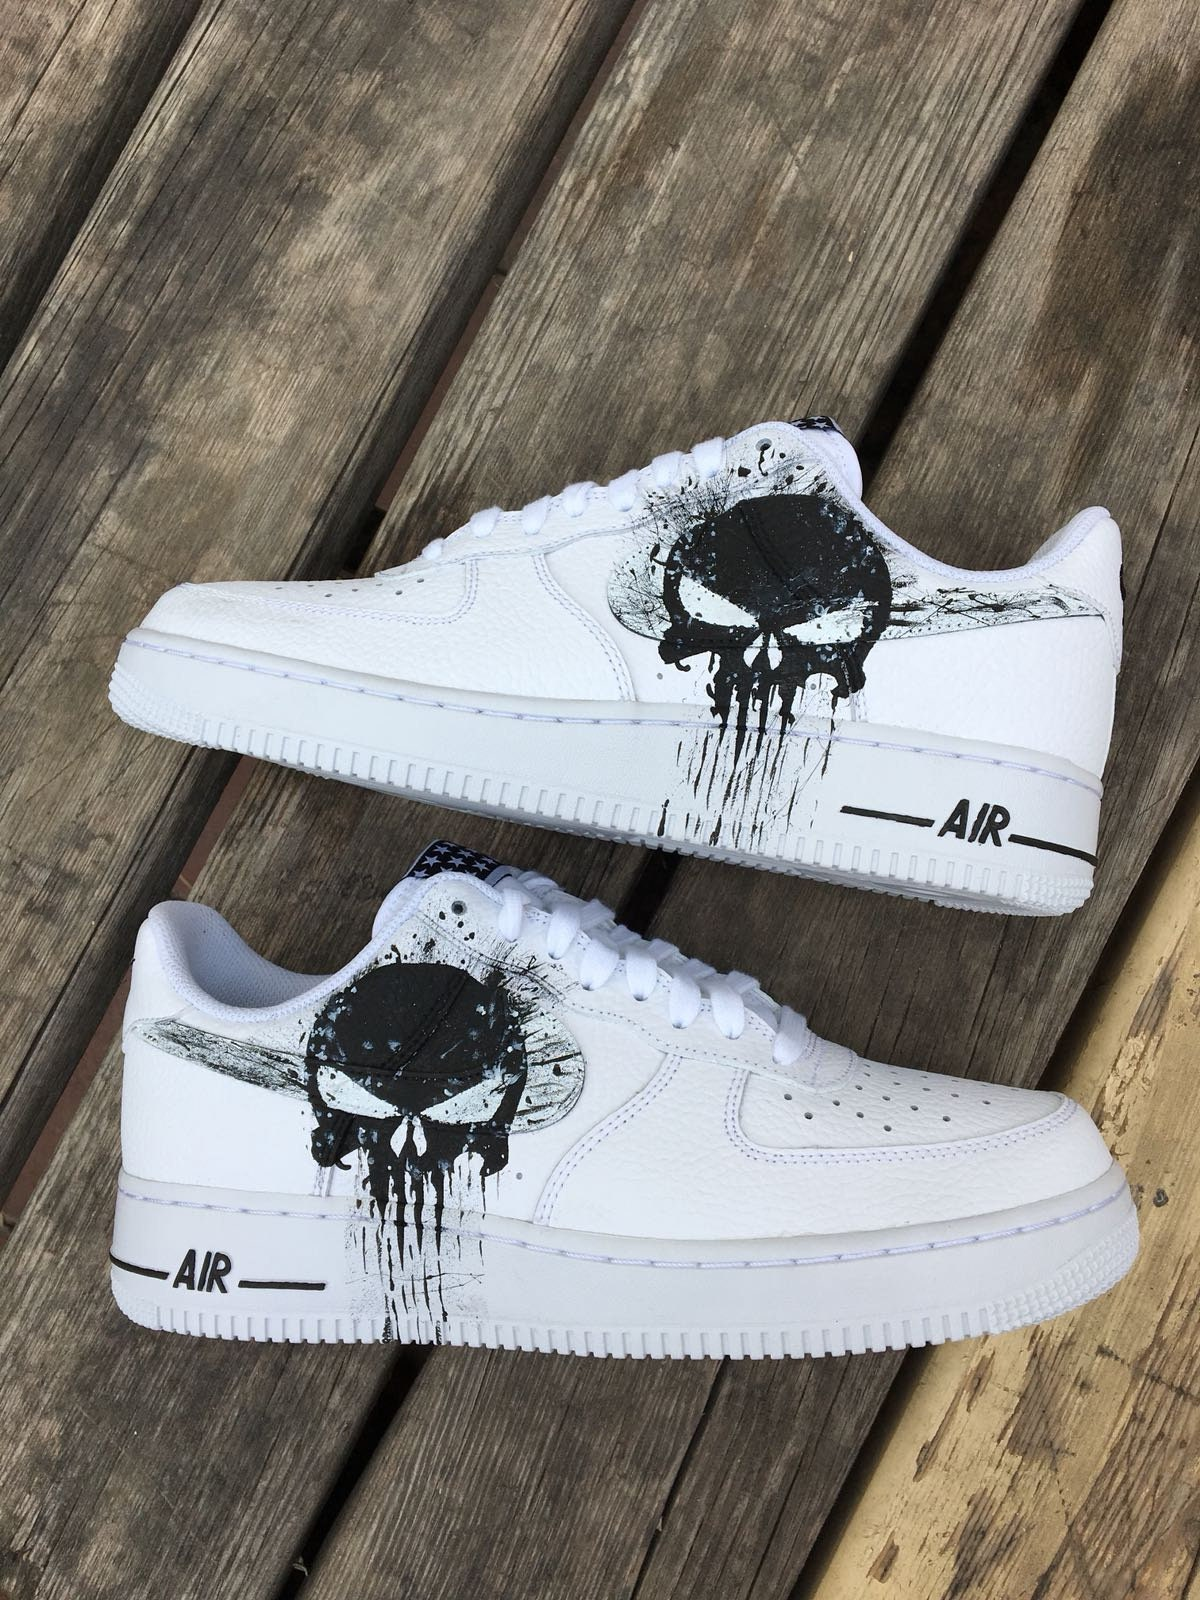 buy online 8d0d3 1a6d1 Custom Nike Air Force one punishercustom sneakers custom   Etsy